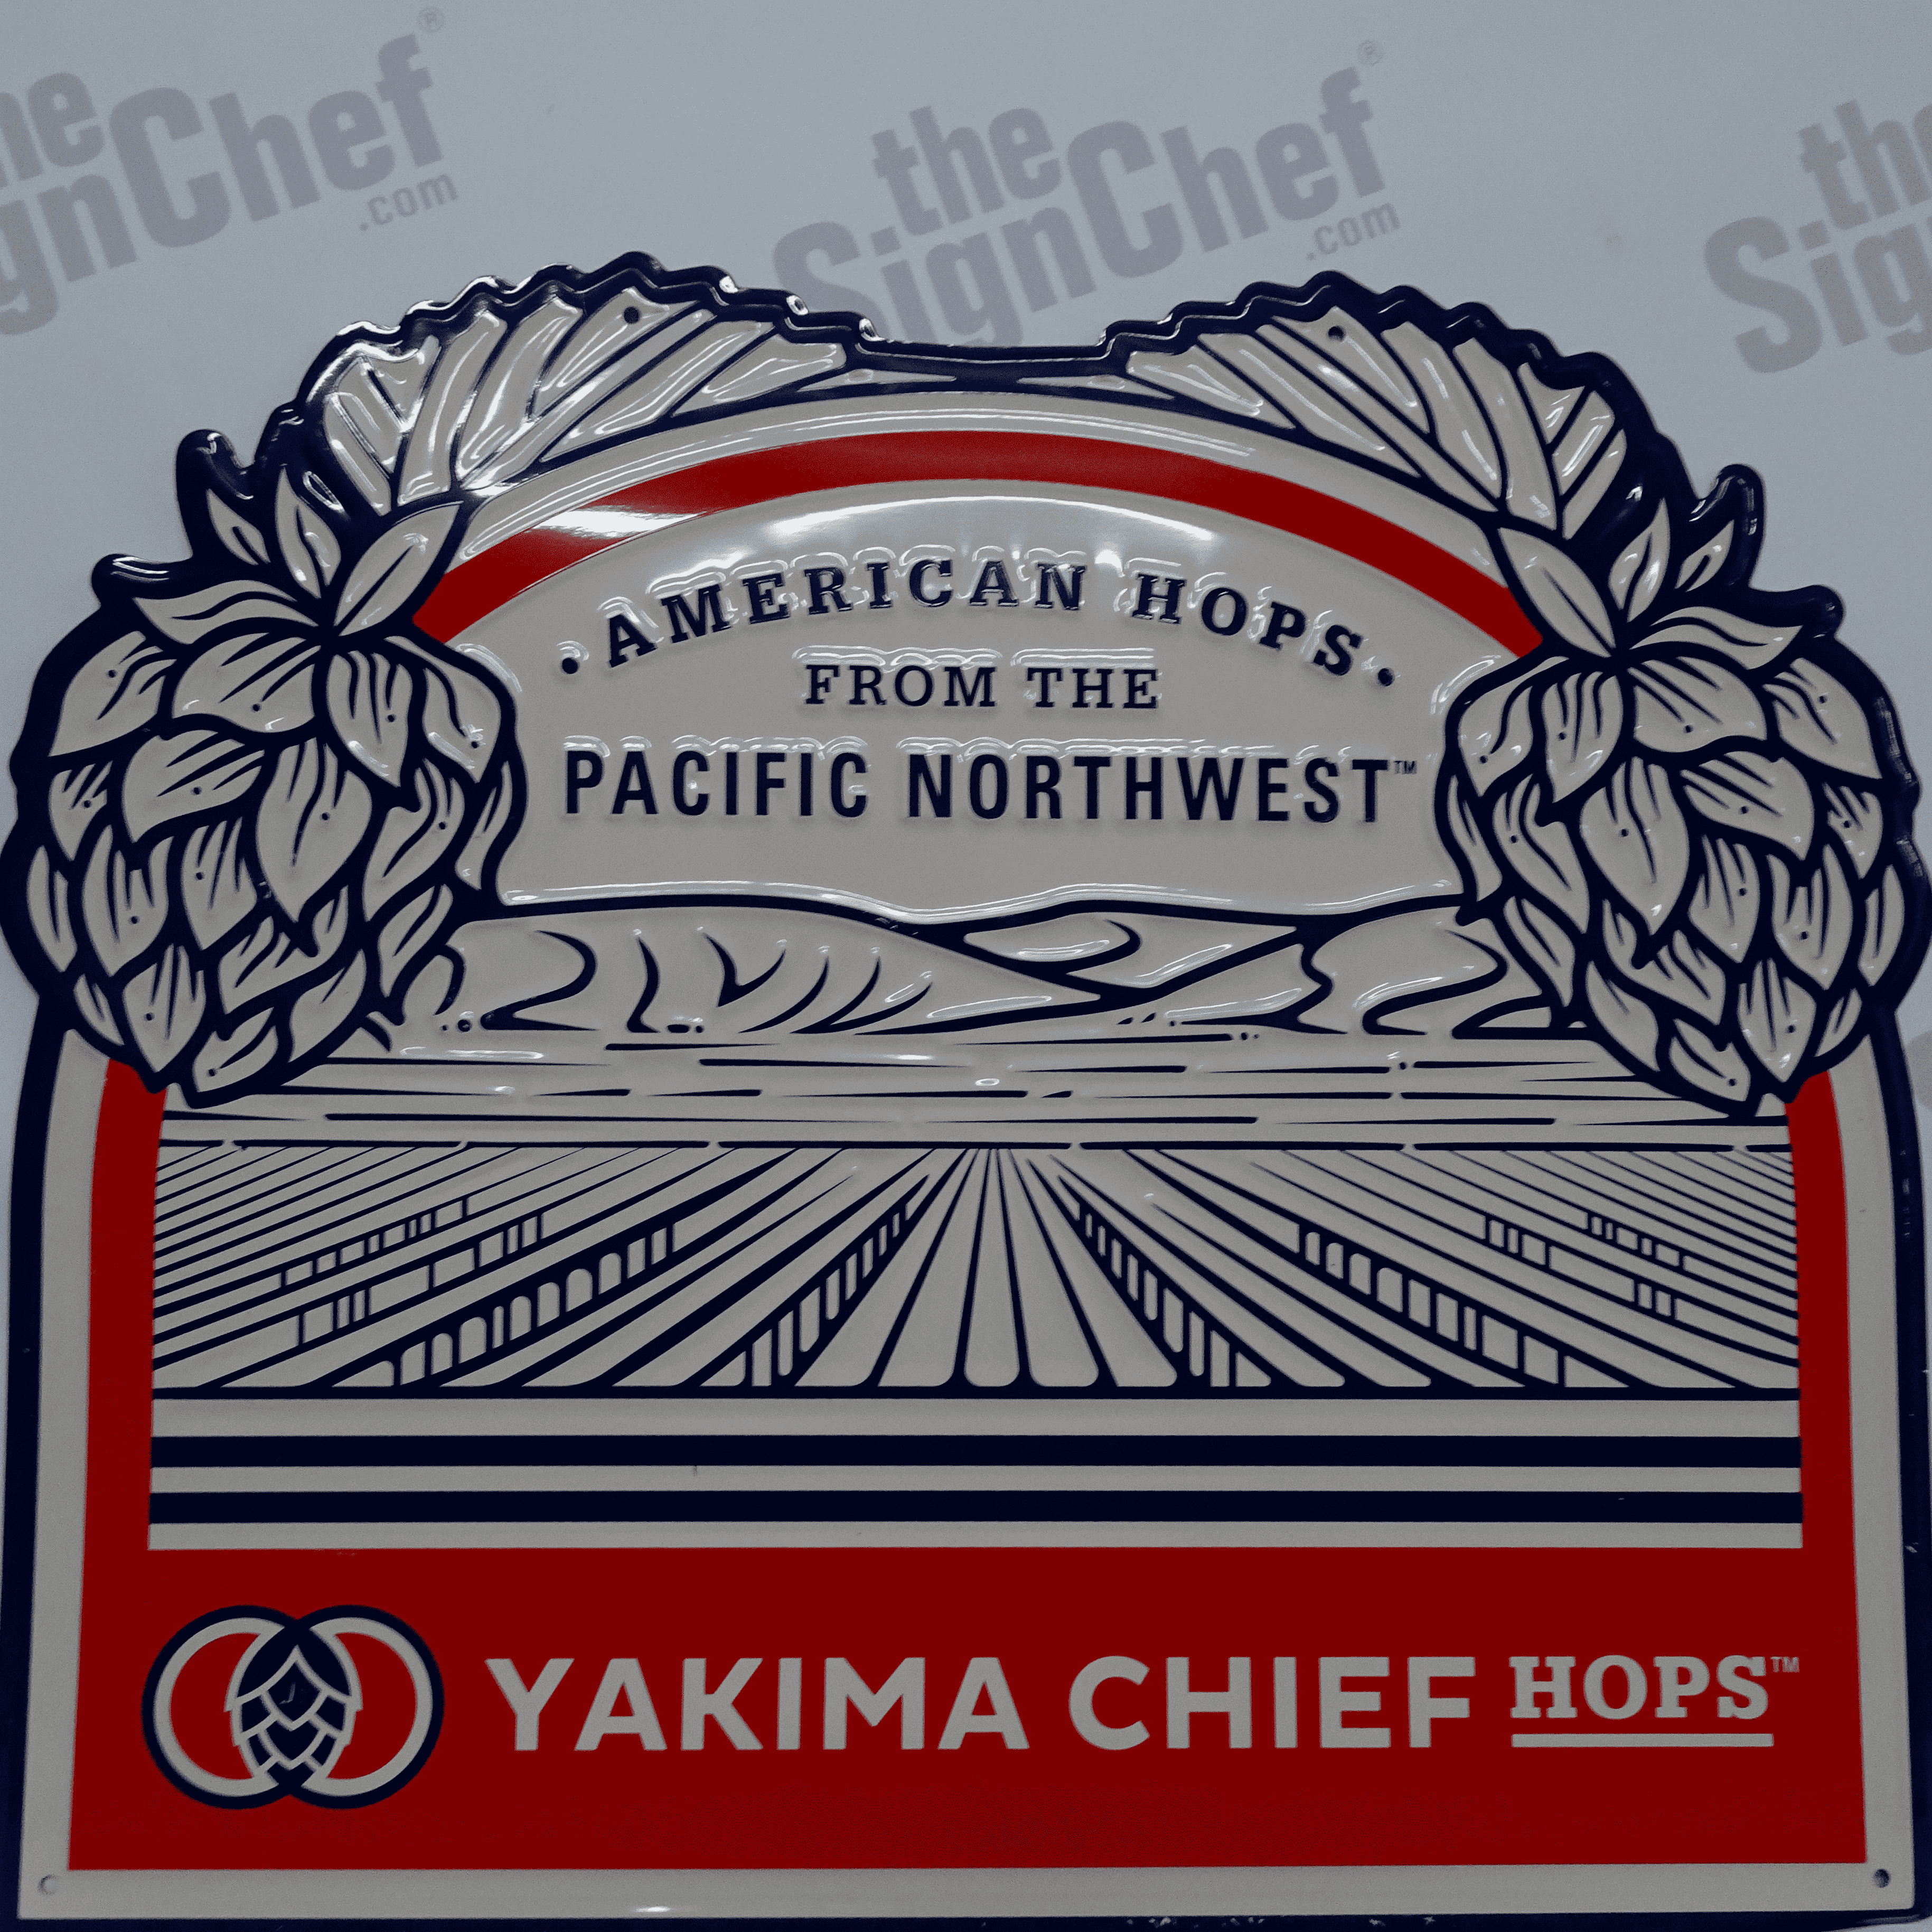 Orange, red, and white vintage sign with text that reads: Yakima Chief Hops